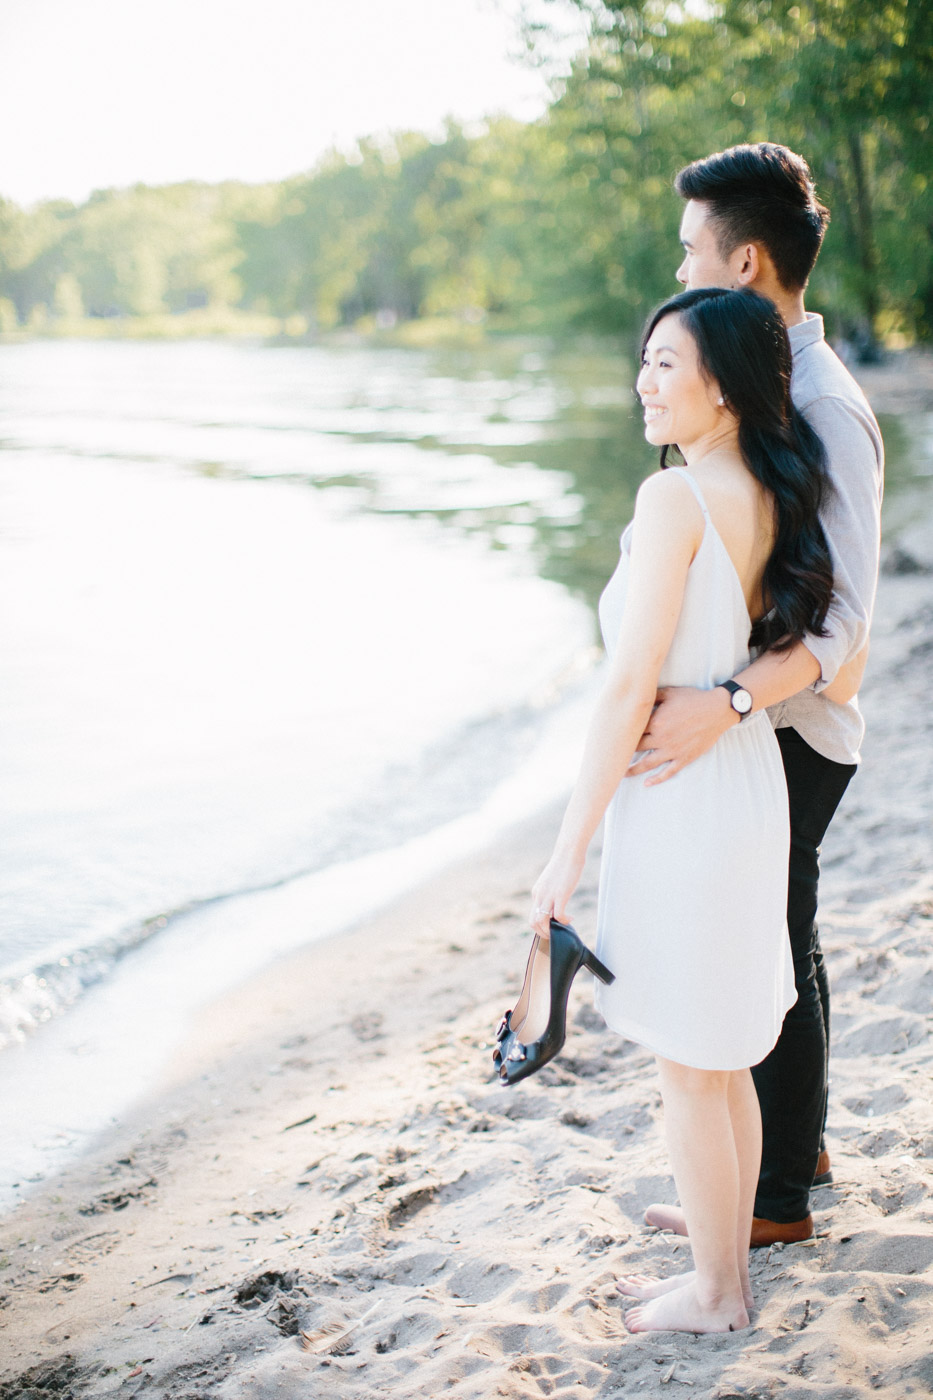 toronto_wedding_photographer_engagement_beach-94.jpg